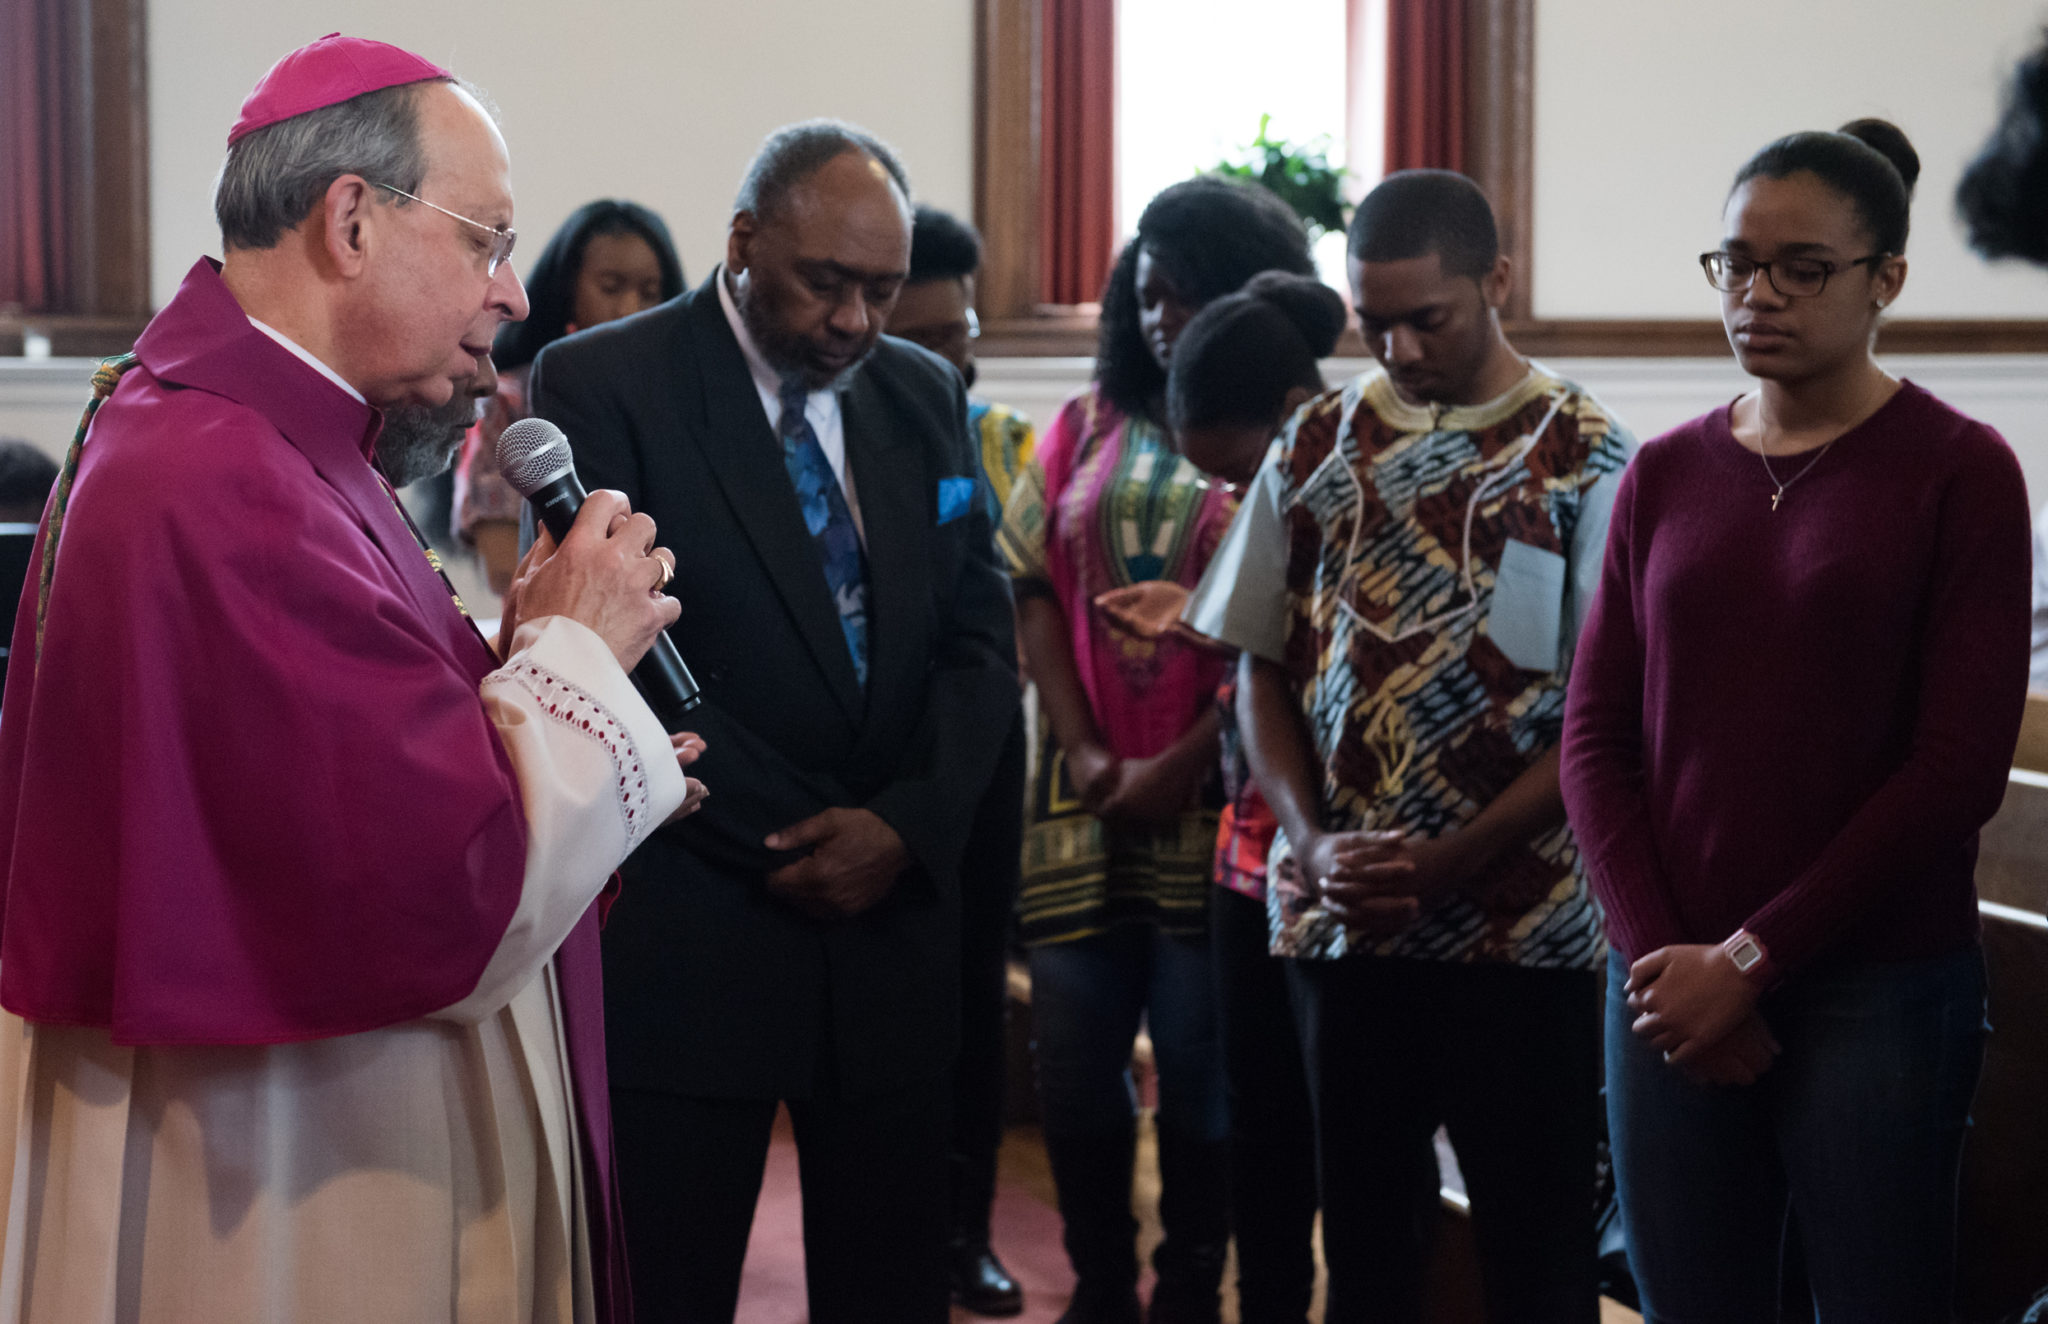 Archbishop Lori Community Prayer - The Catholic Community Foundation